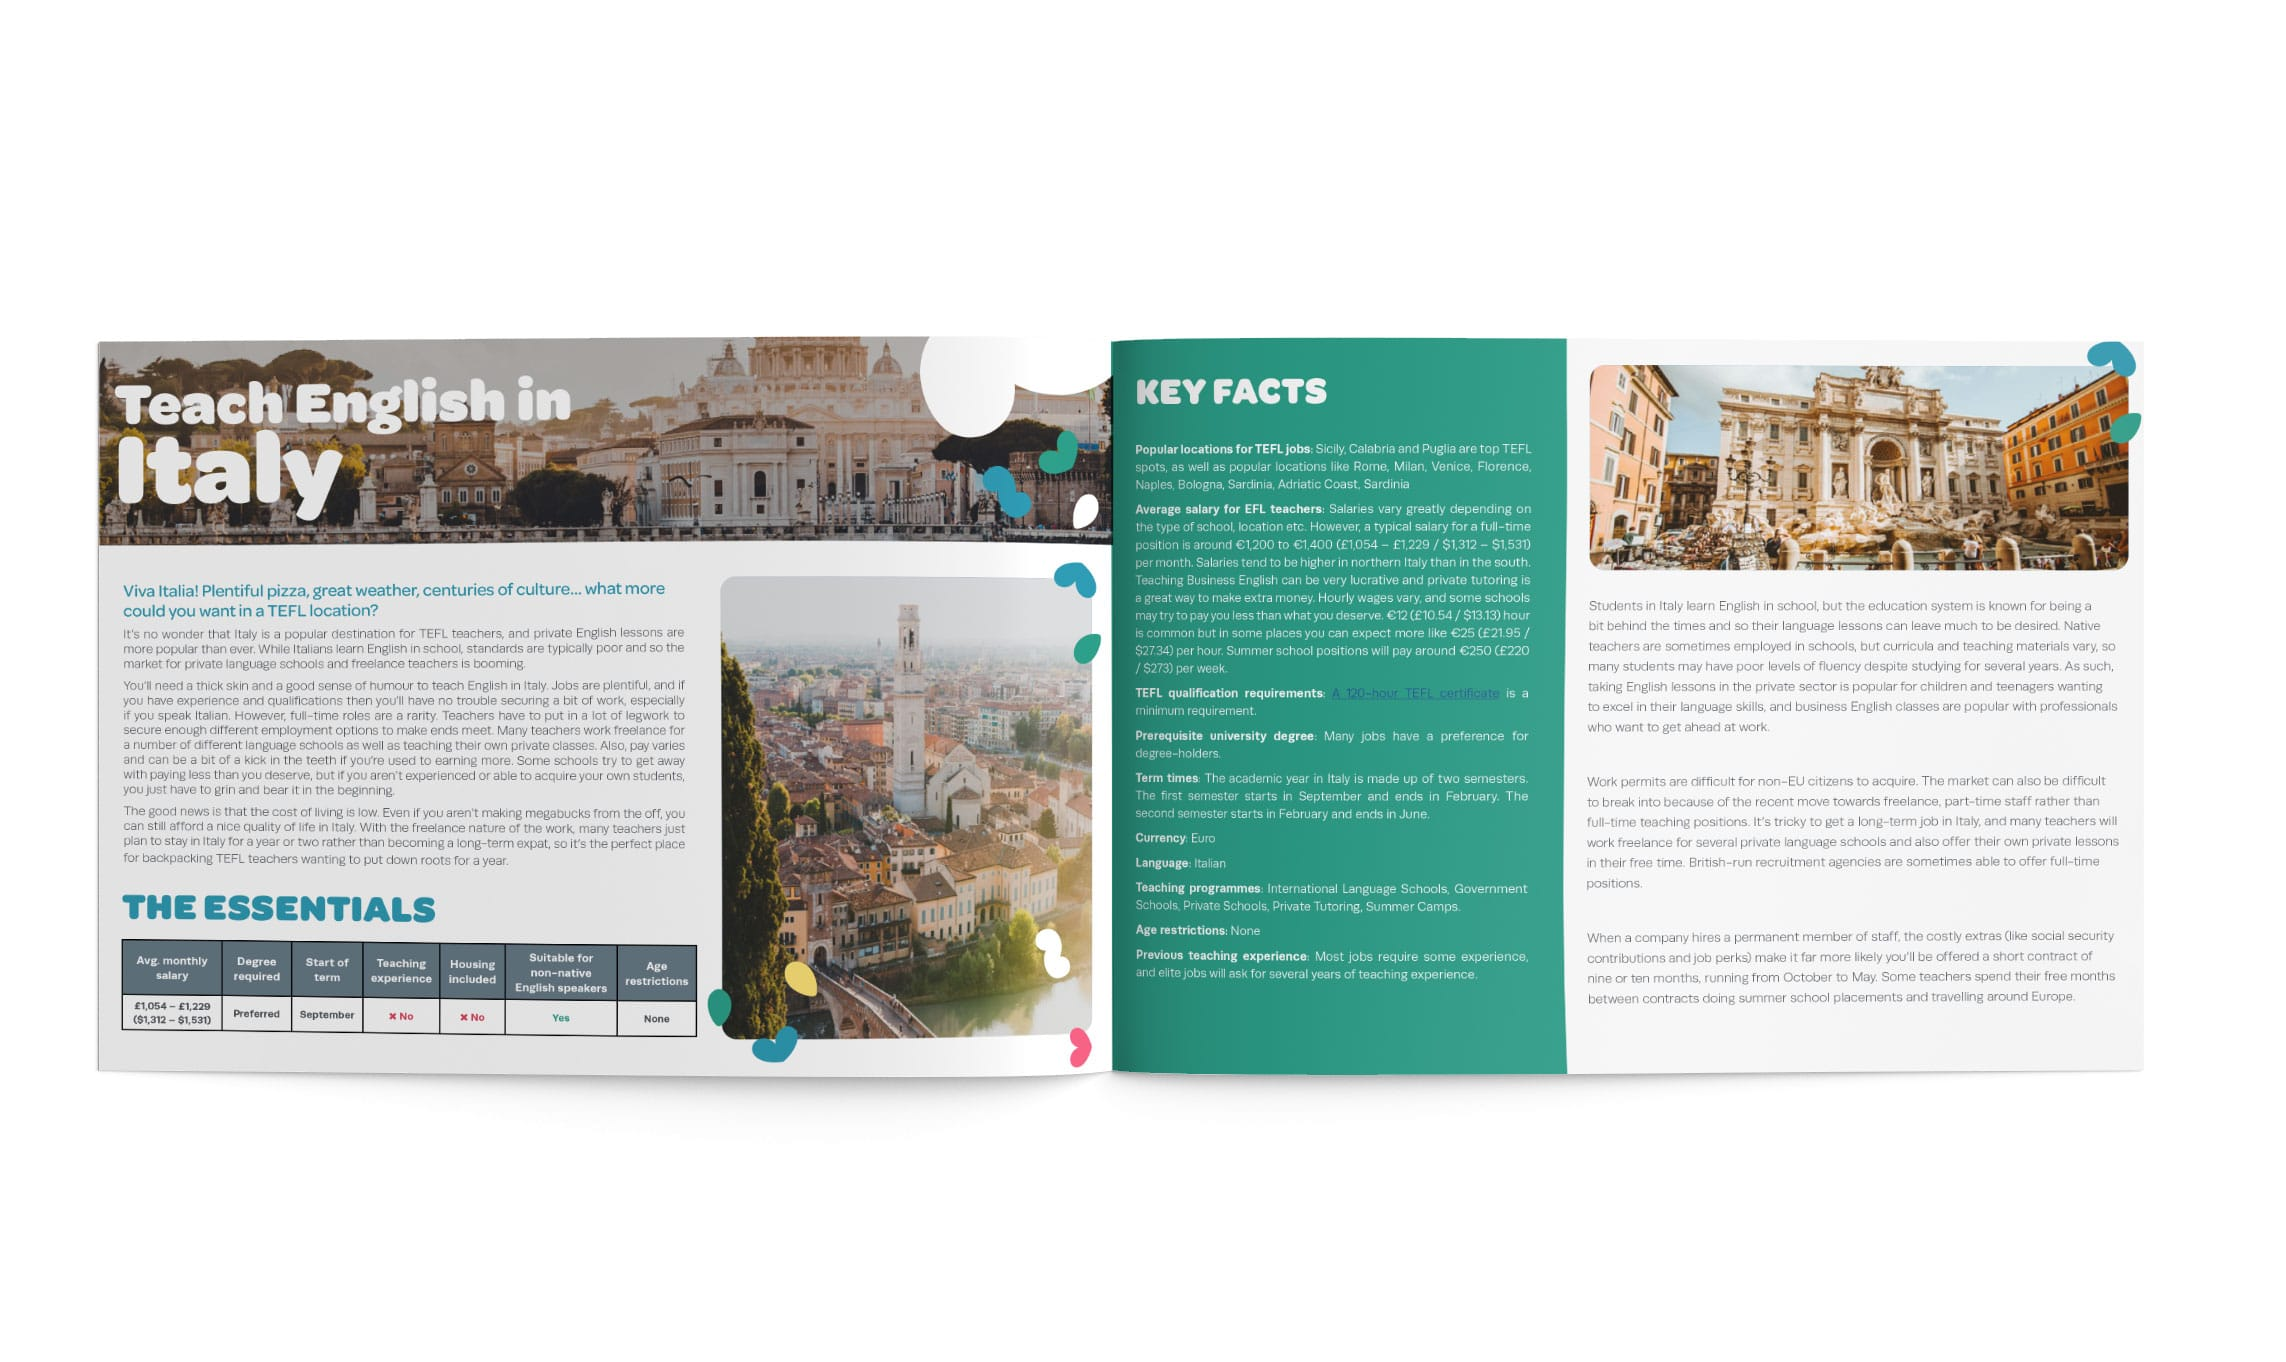 The TEFL Org Europe Guide inner pages